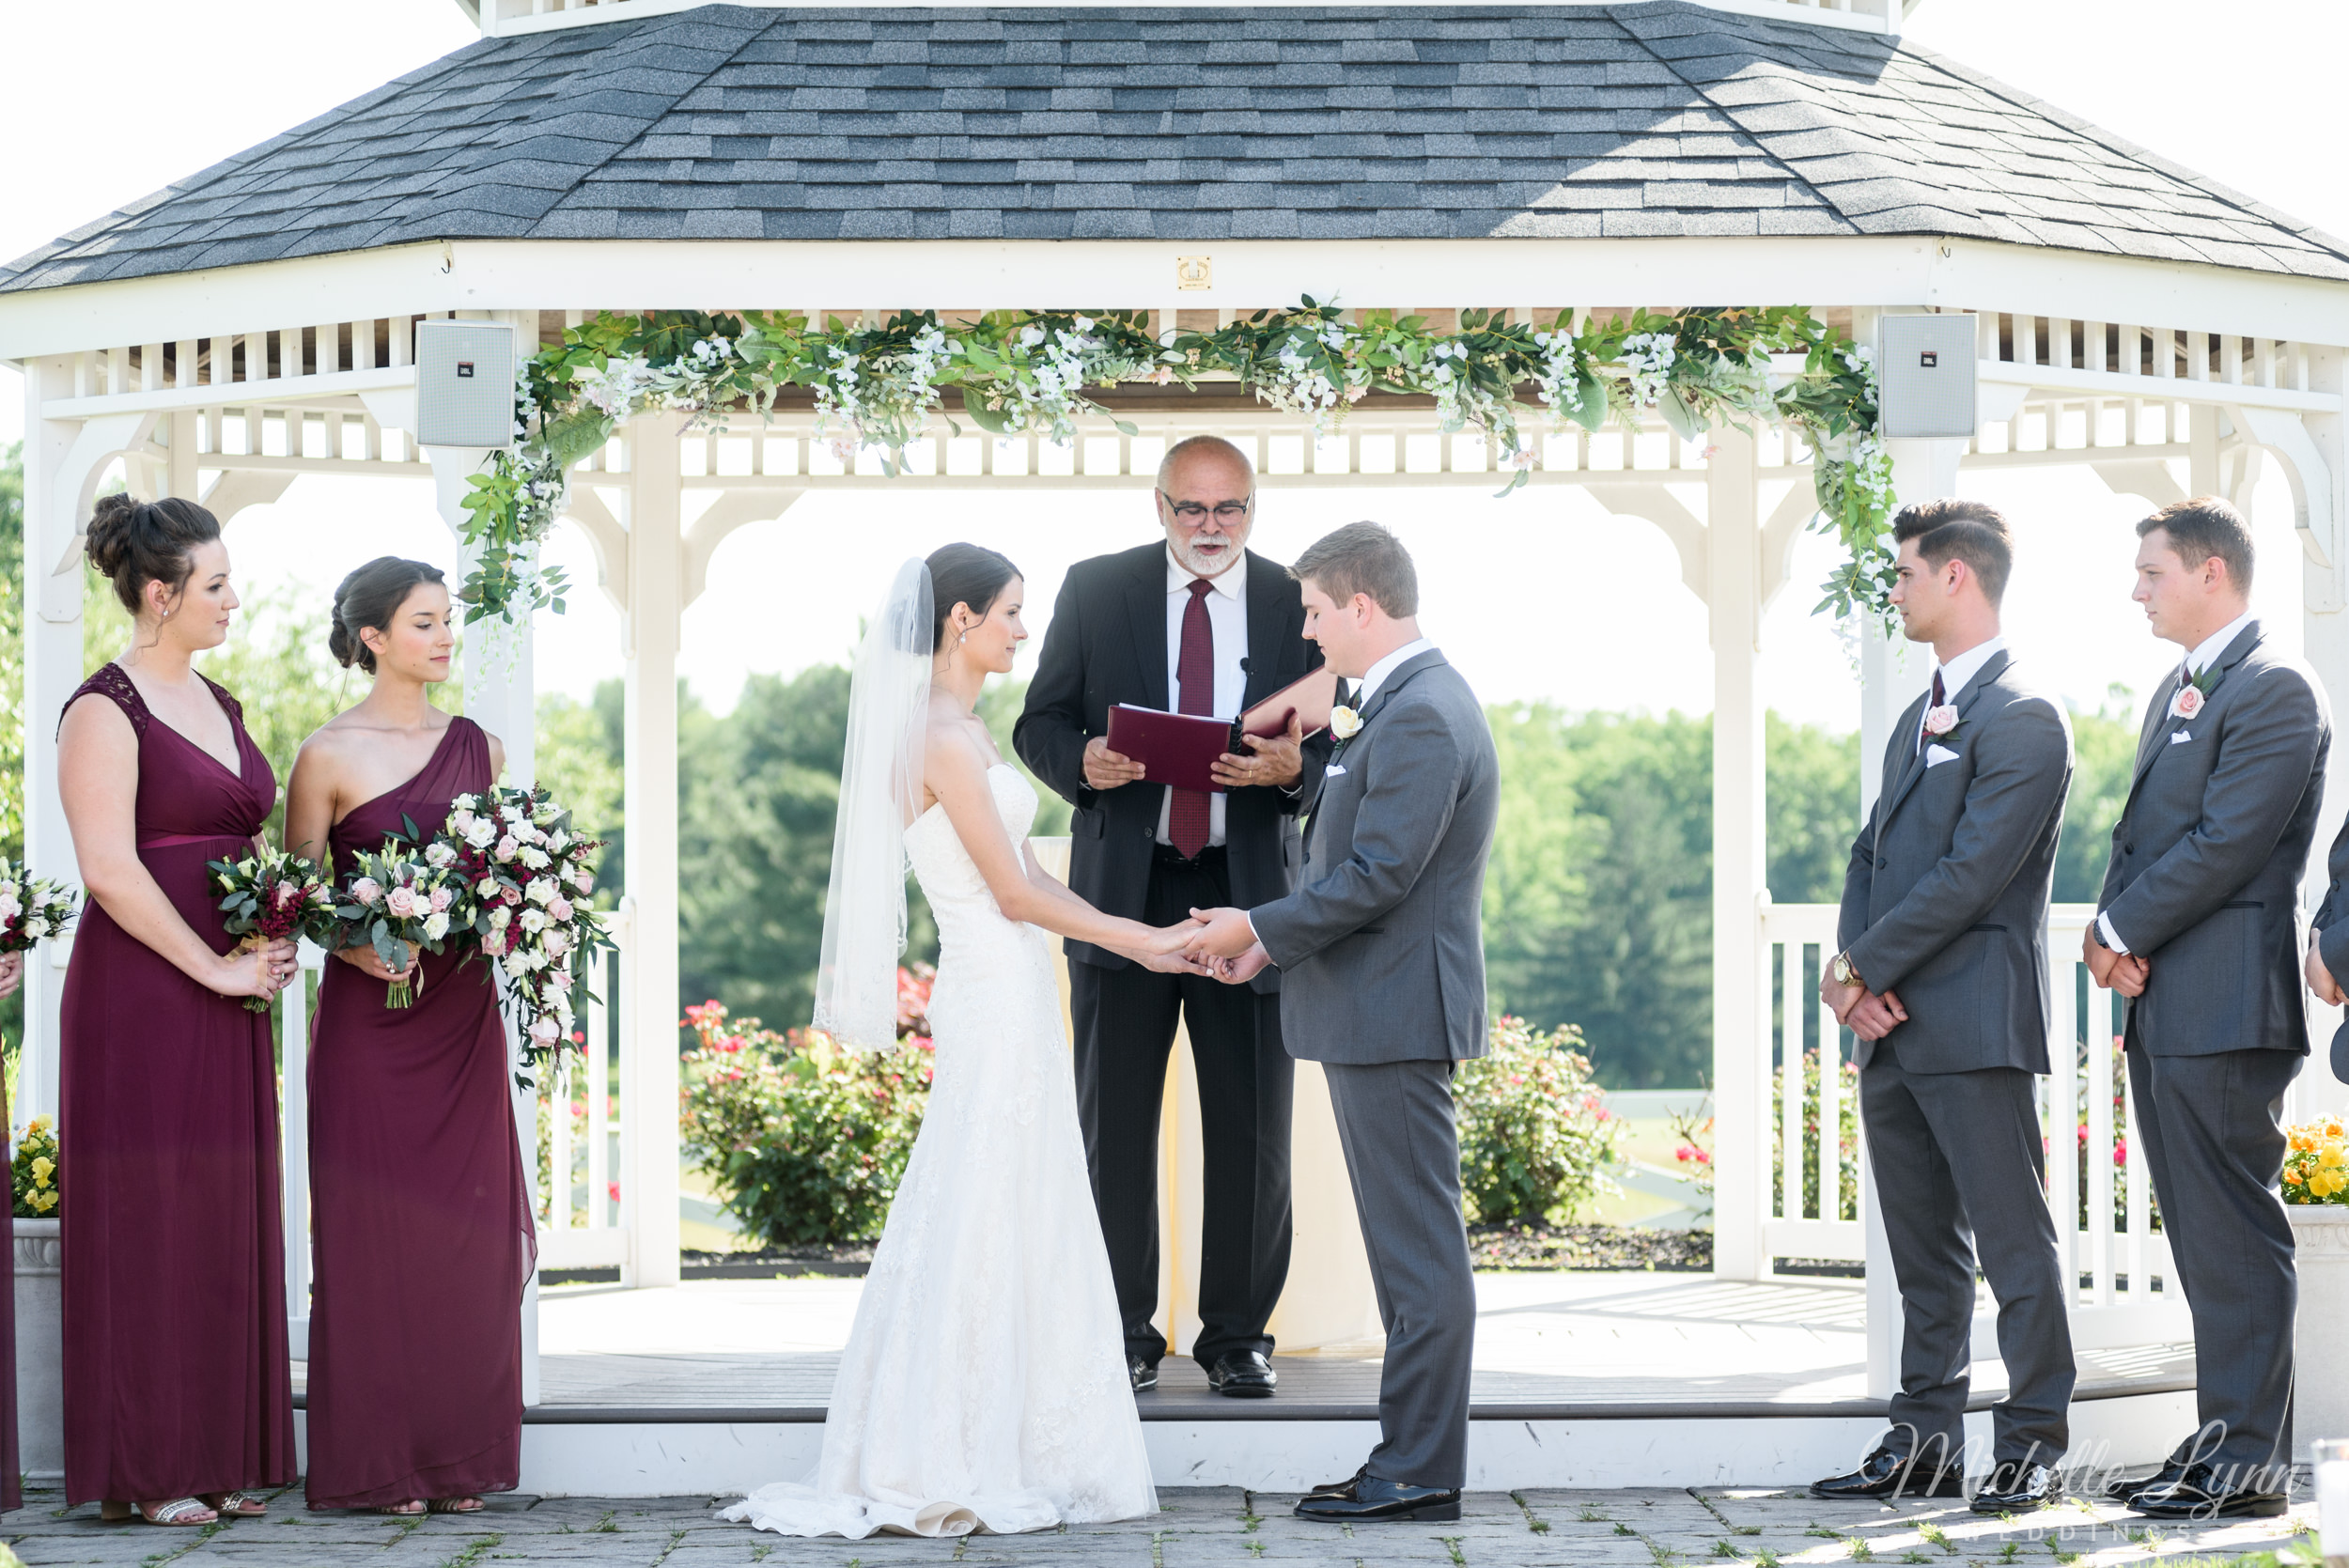 mlw-loft-at-sweet-water-country-club-wedding-photography-46.jpg